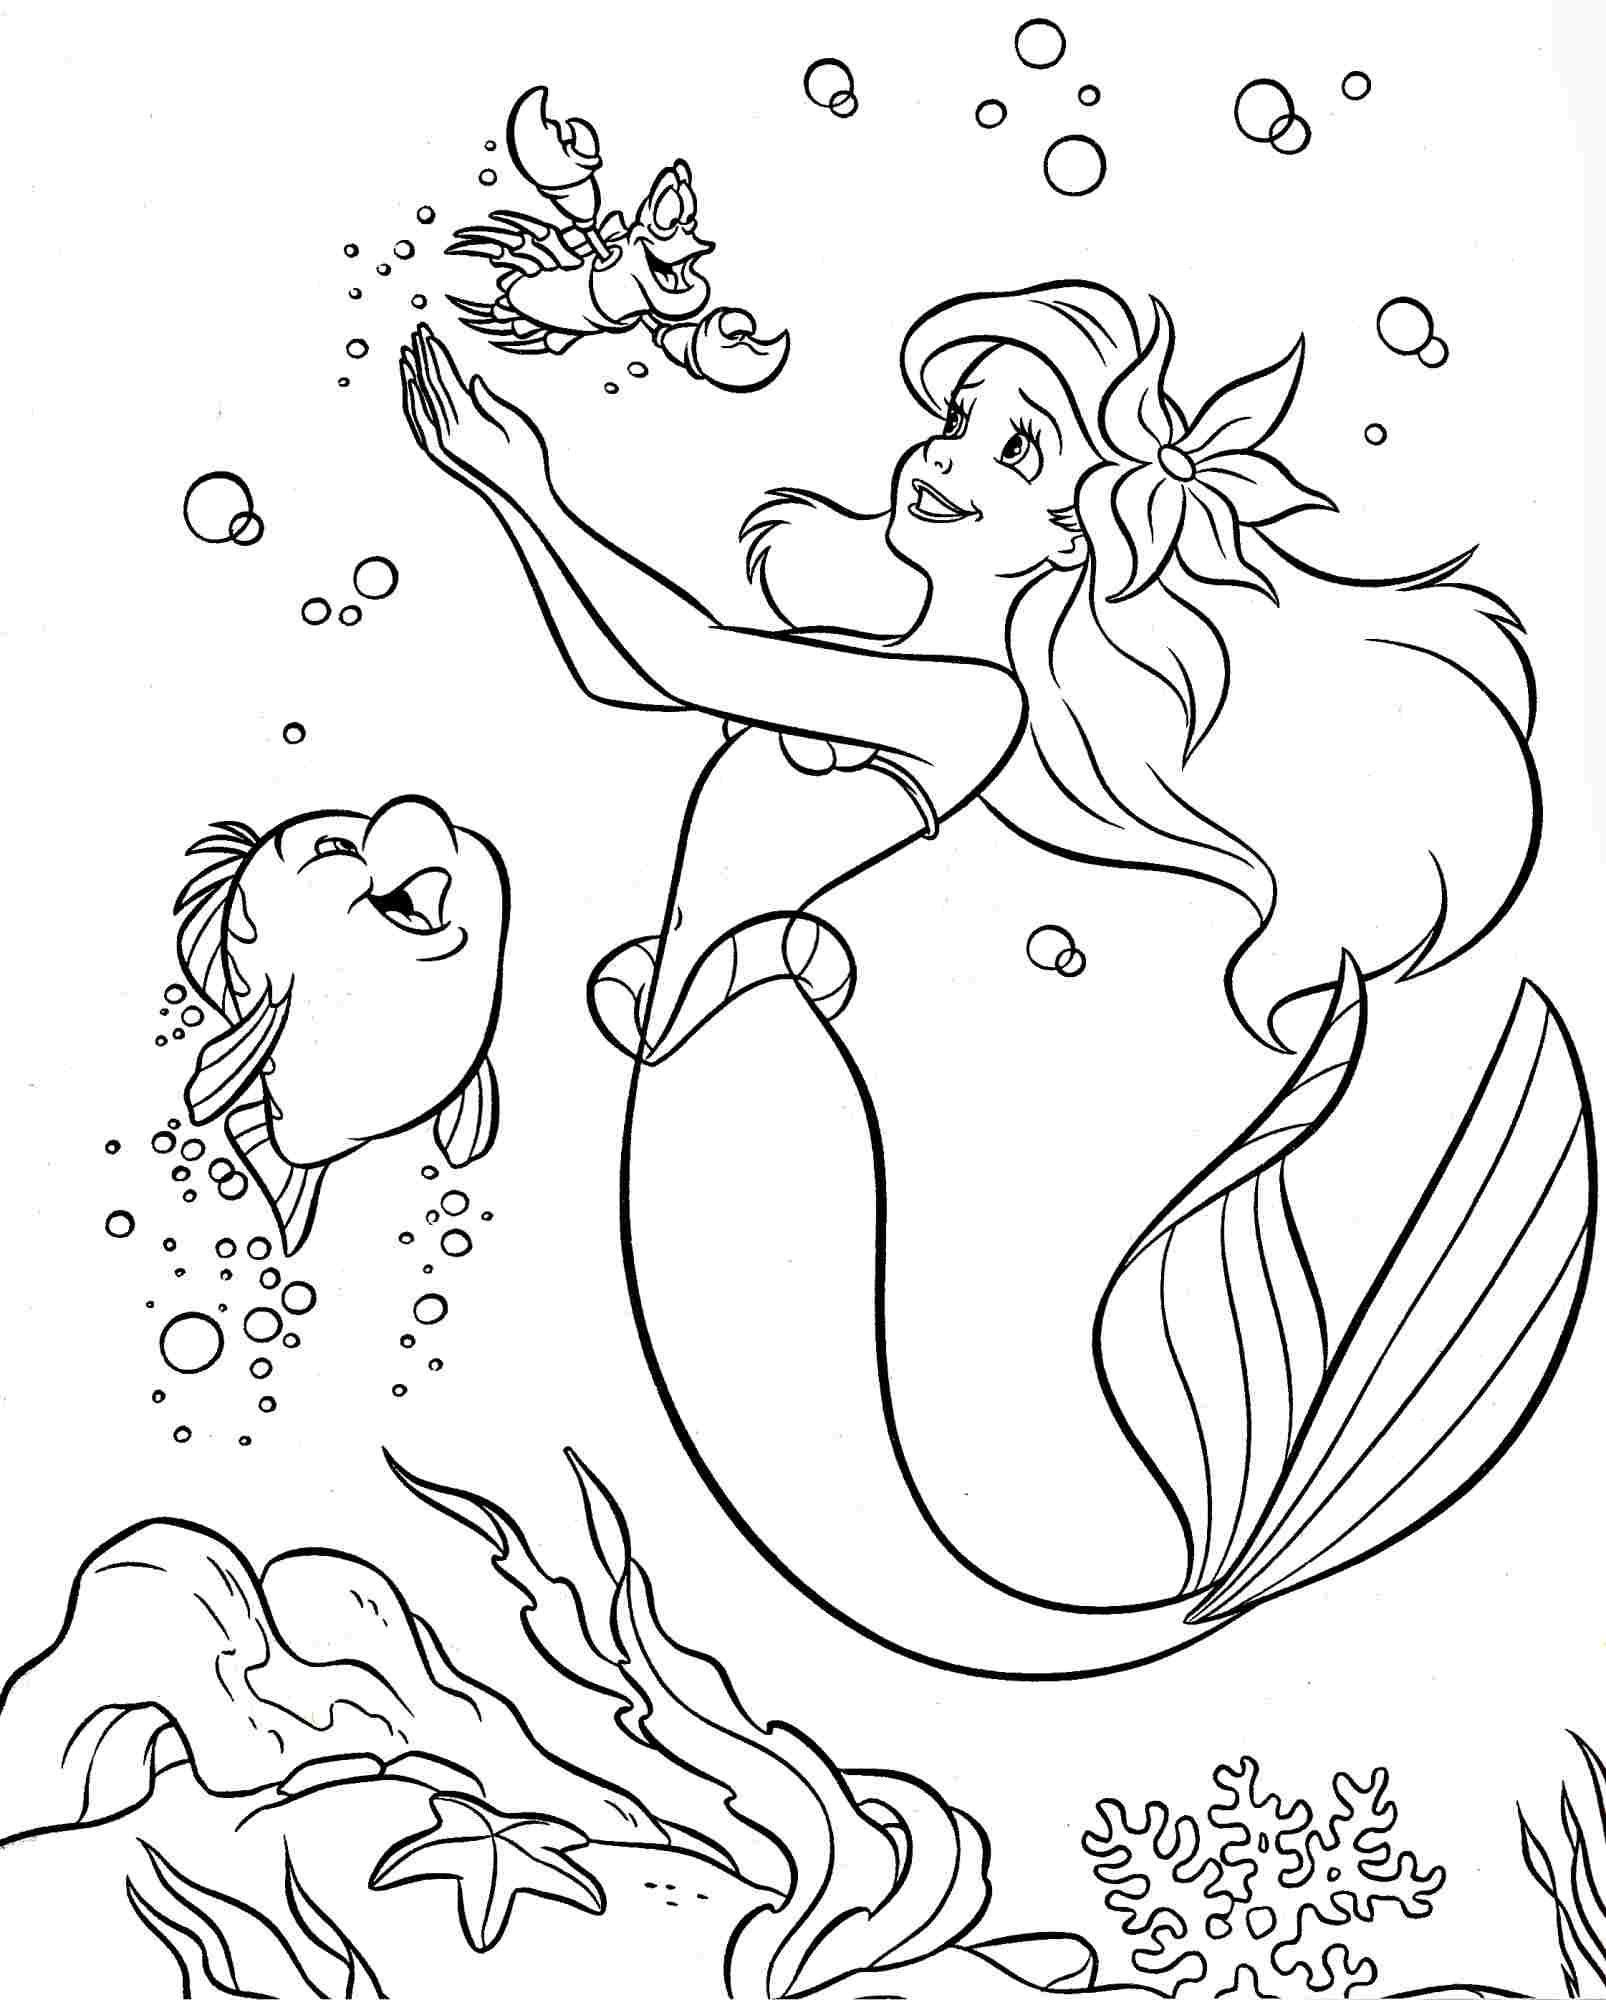 8 Disney Kleurplaten Coloring Pages Free Disney Coloring Pages Ariel Coloring Pages Disney Princess Coloring Pages